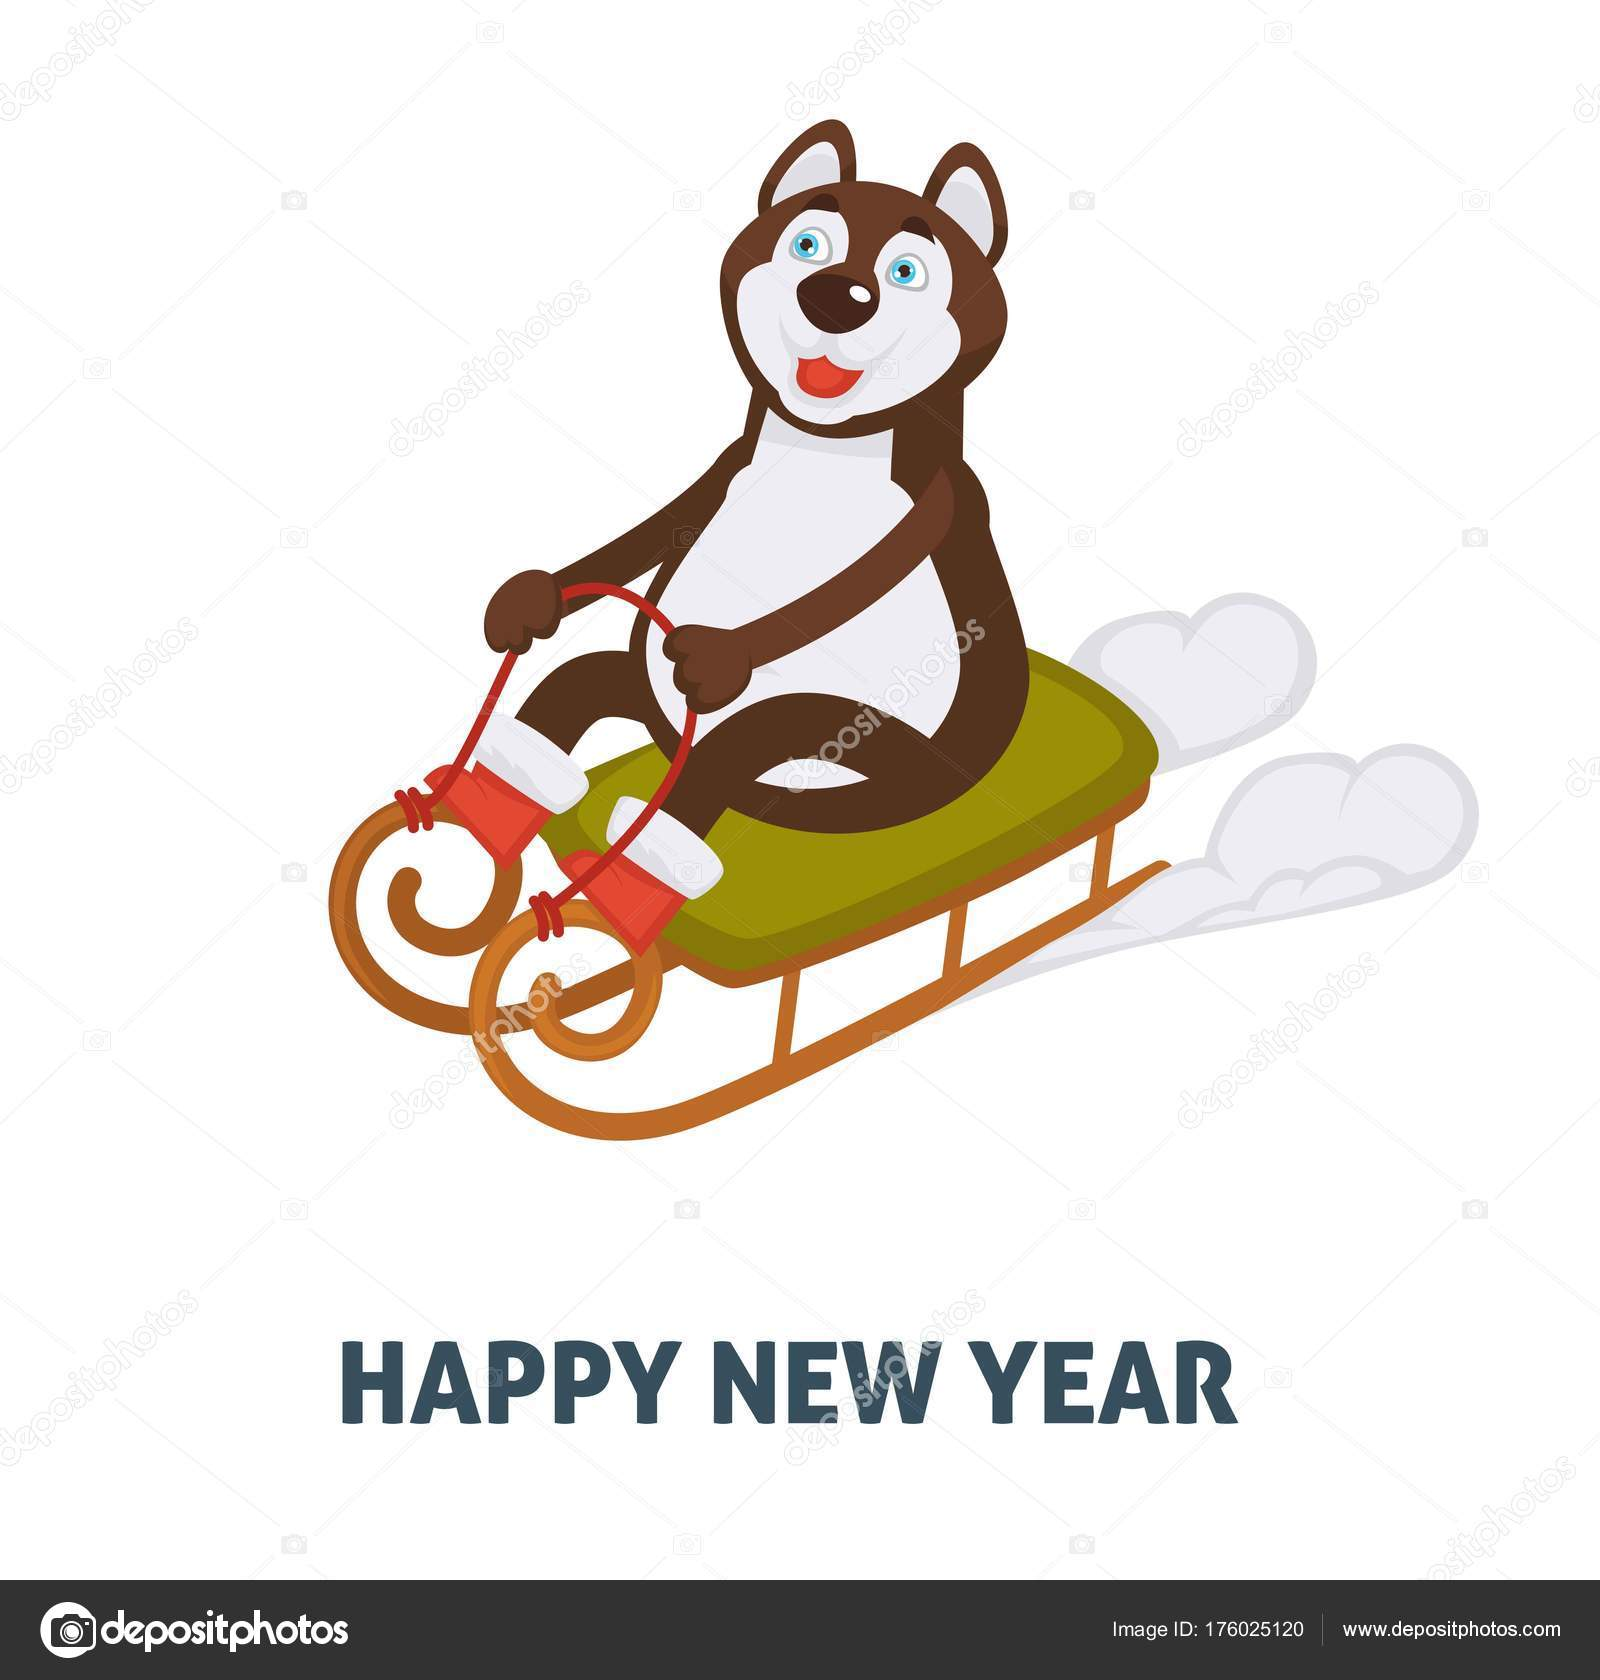 happy new year 2018 cartoon dog celebrating holidays santa sleigh stock vector